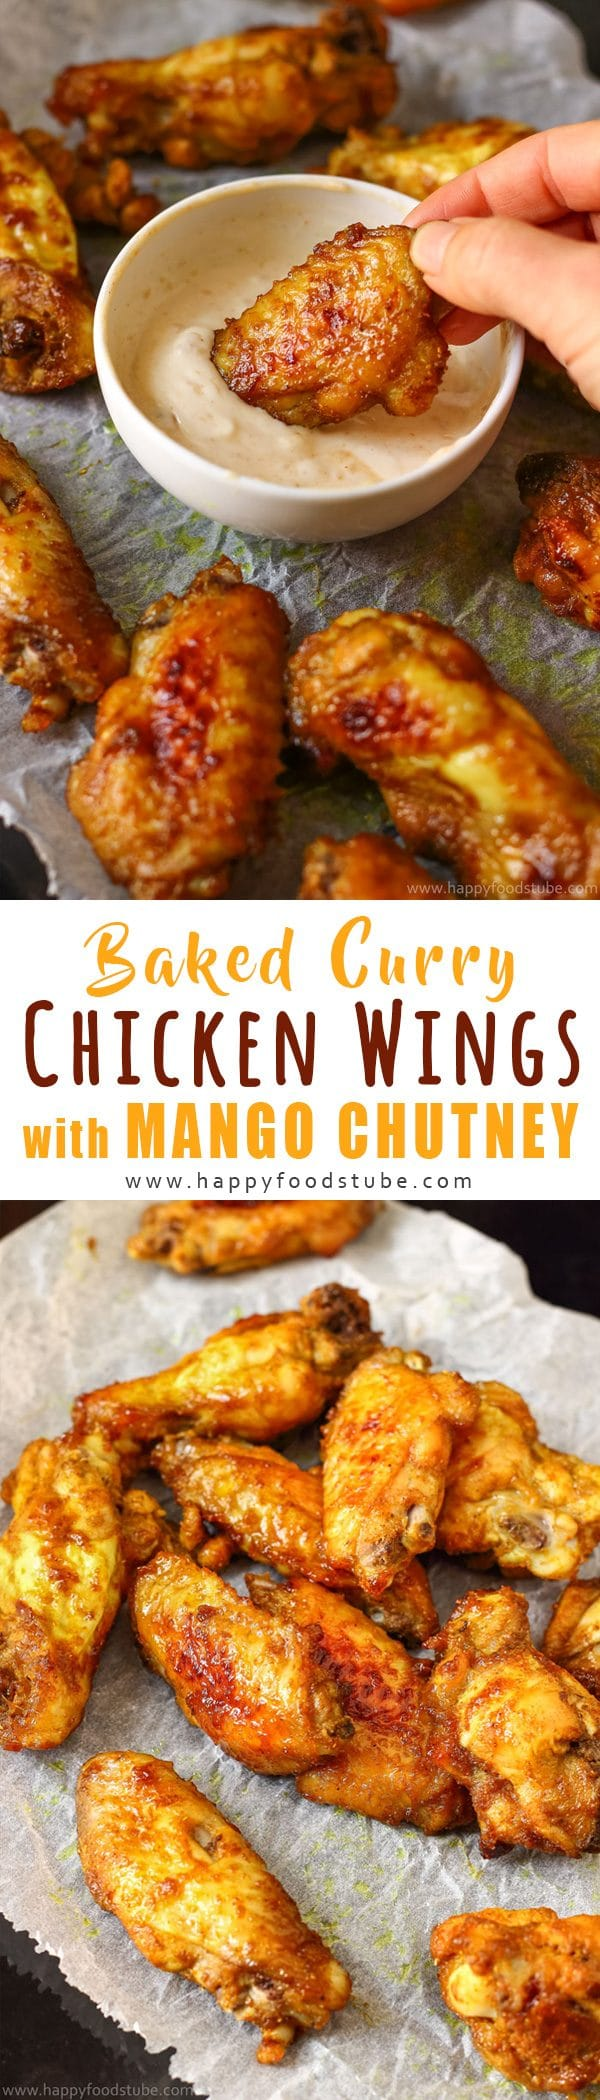 Baked Curry Chicken Wings with Mango Chutney Recipe